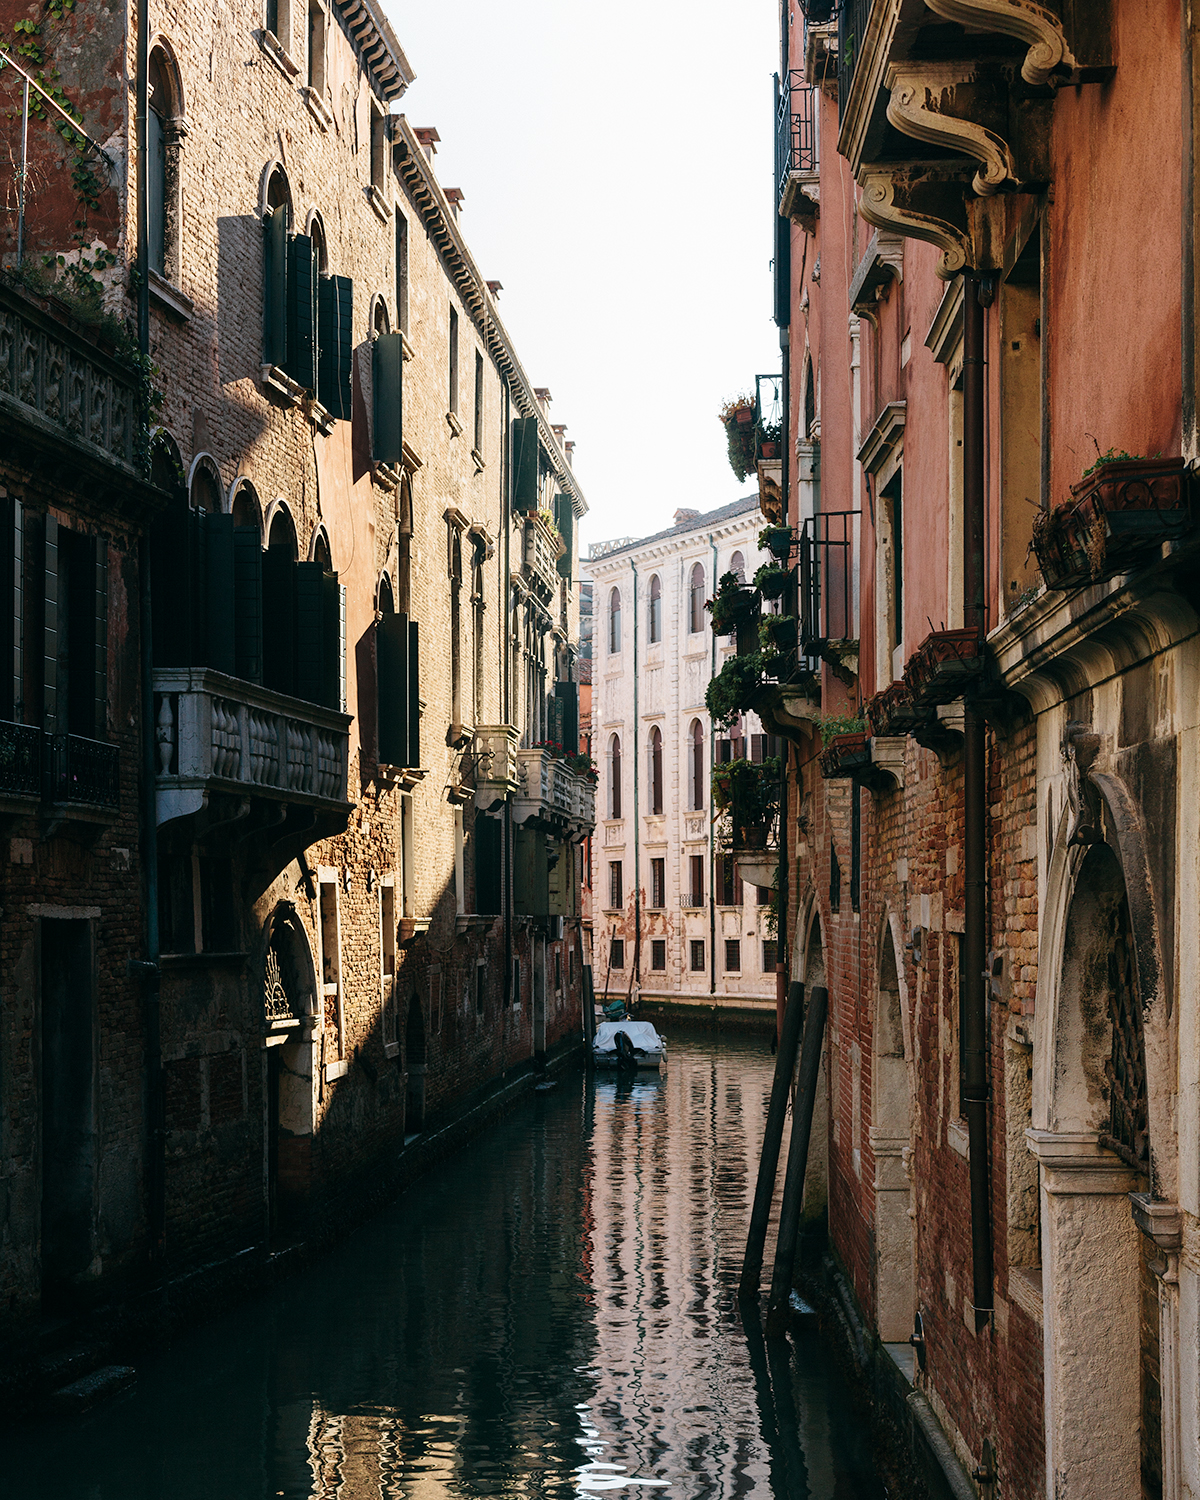 Brandon-Sampson-Photography-Italy-Venice